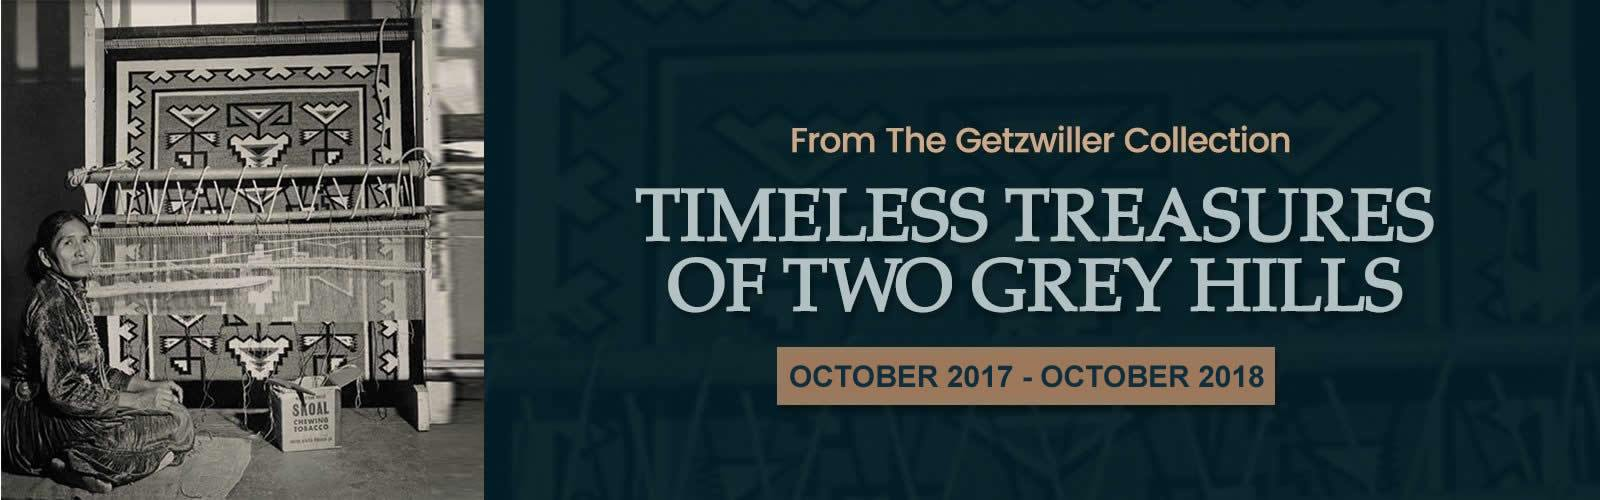 Exhibit from the Steve Getzwiller Collection: Timeless Treasures of Two Grey Hills October 2017 to April 2018